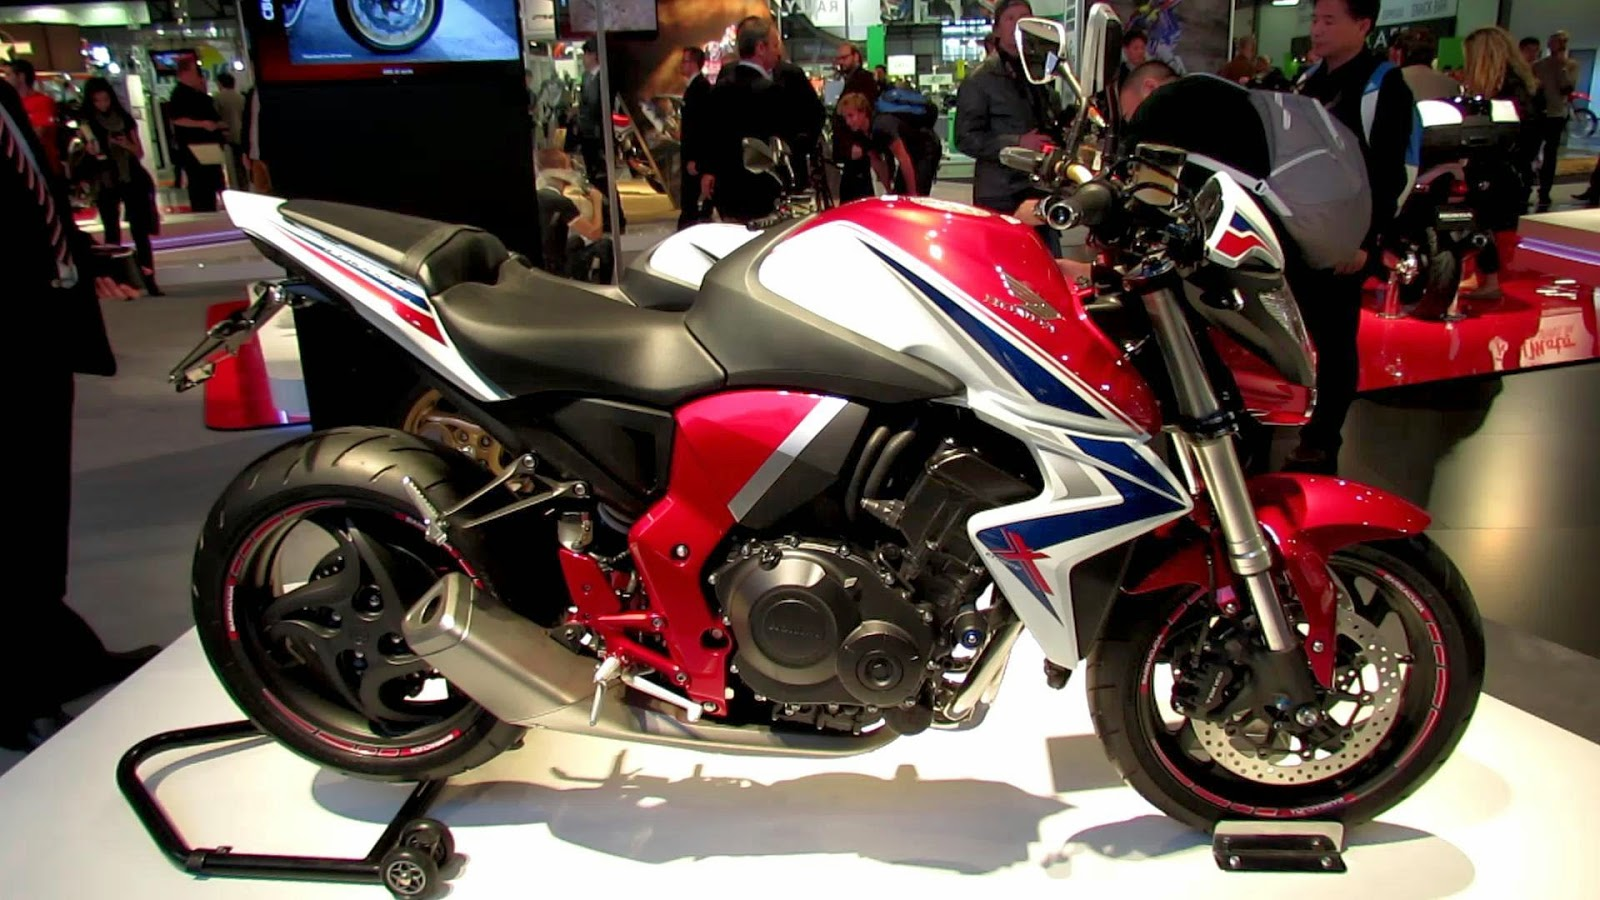 Honda CB1000R Latest Motorcycle Wallpapers